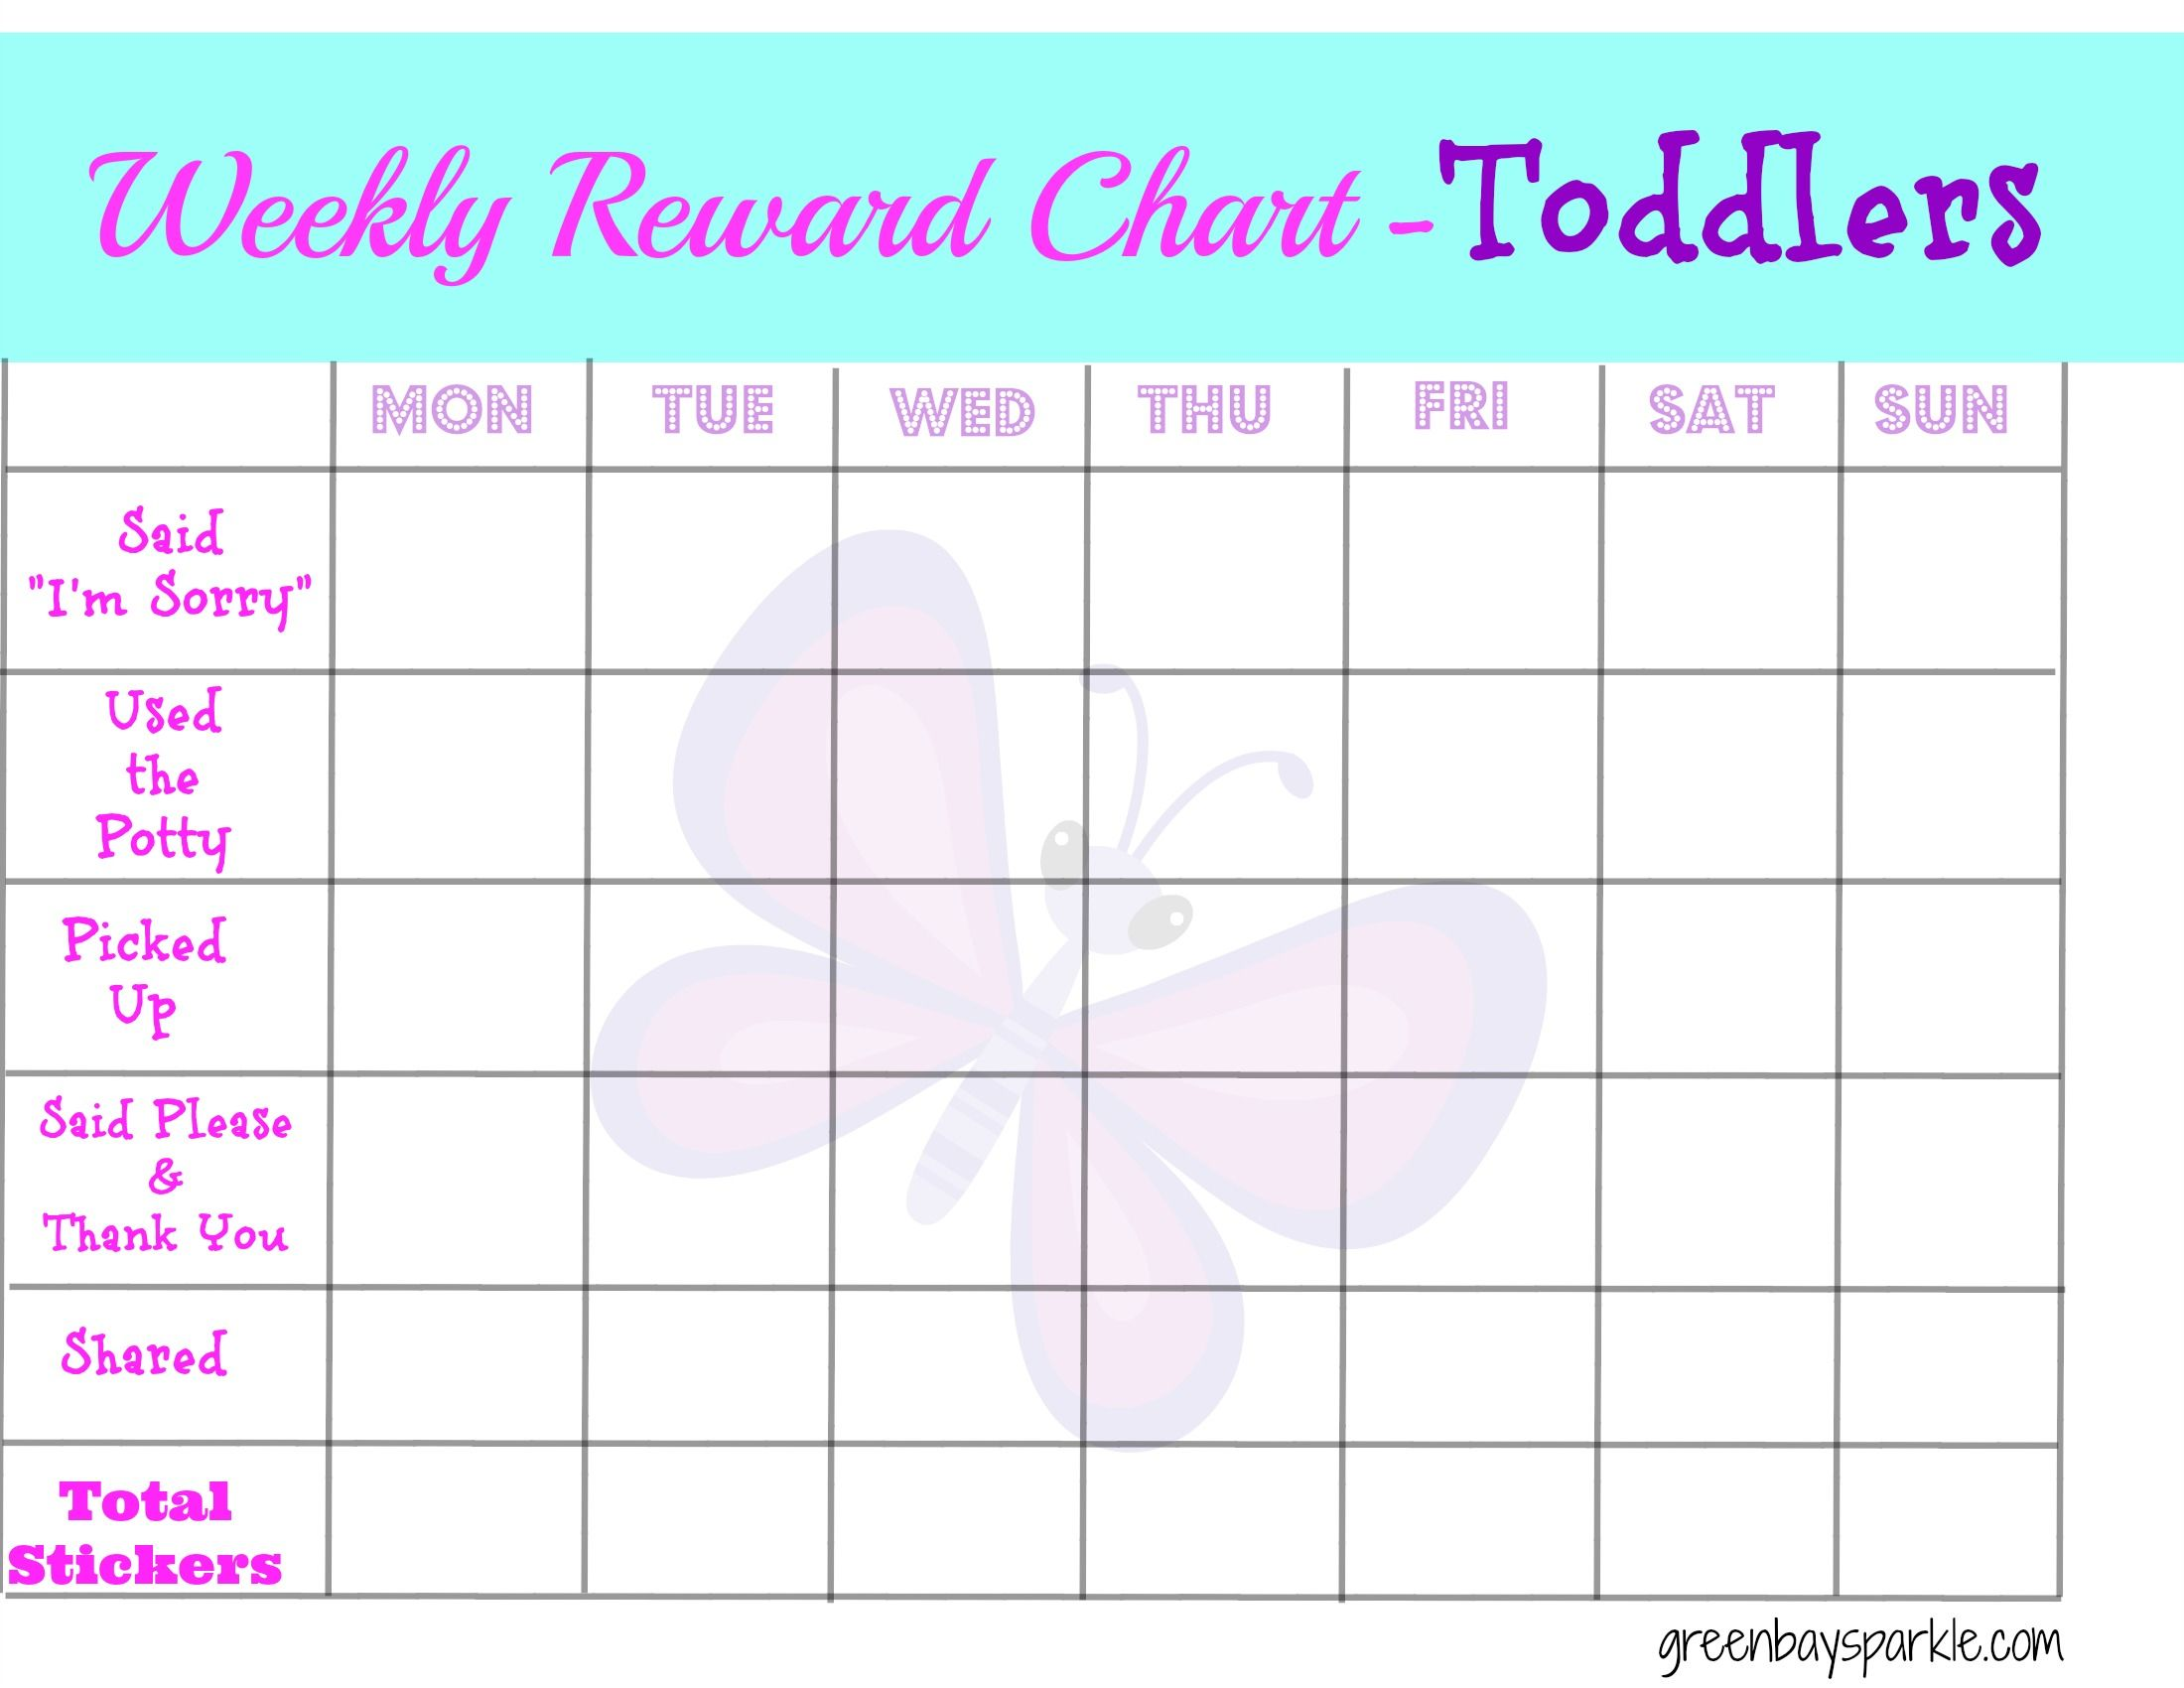 Weekly Reward Chart - Toddlers